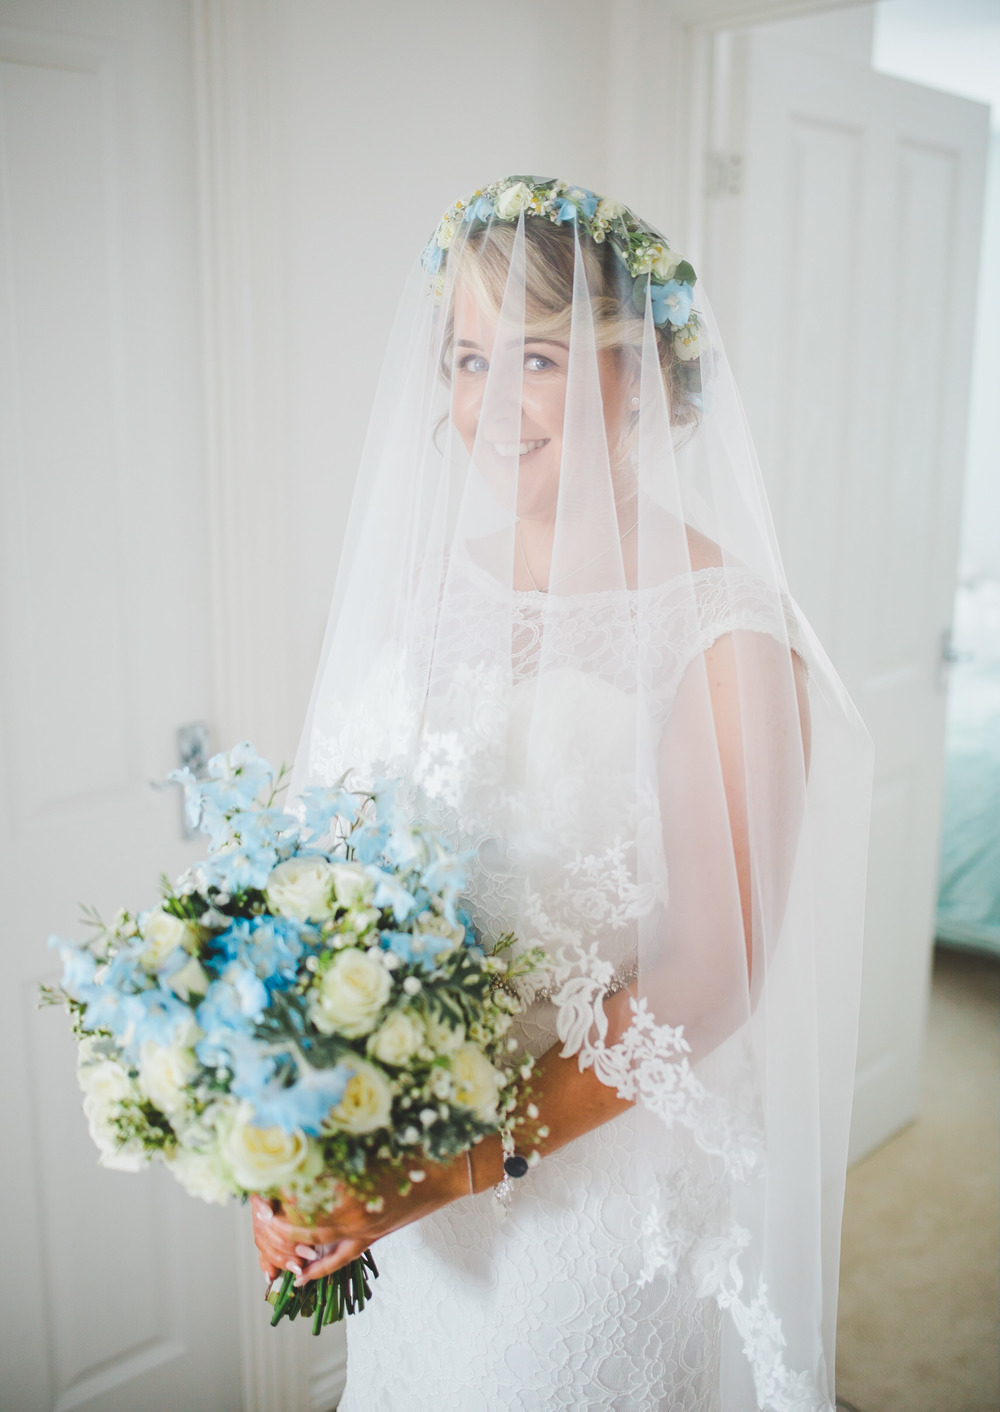 The bride in her veil -relaxed wedding photography